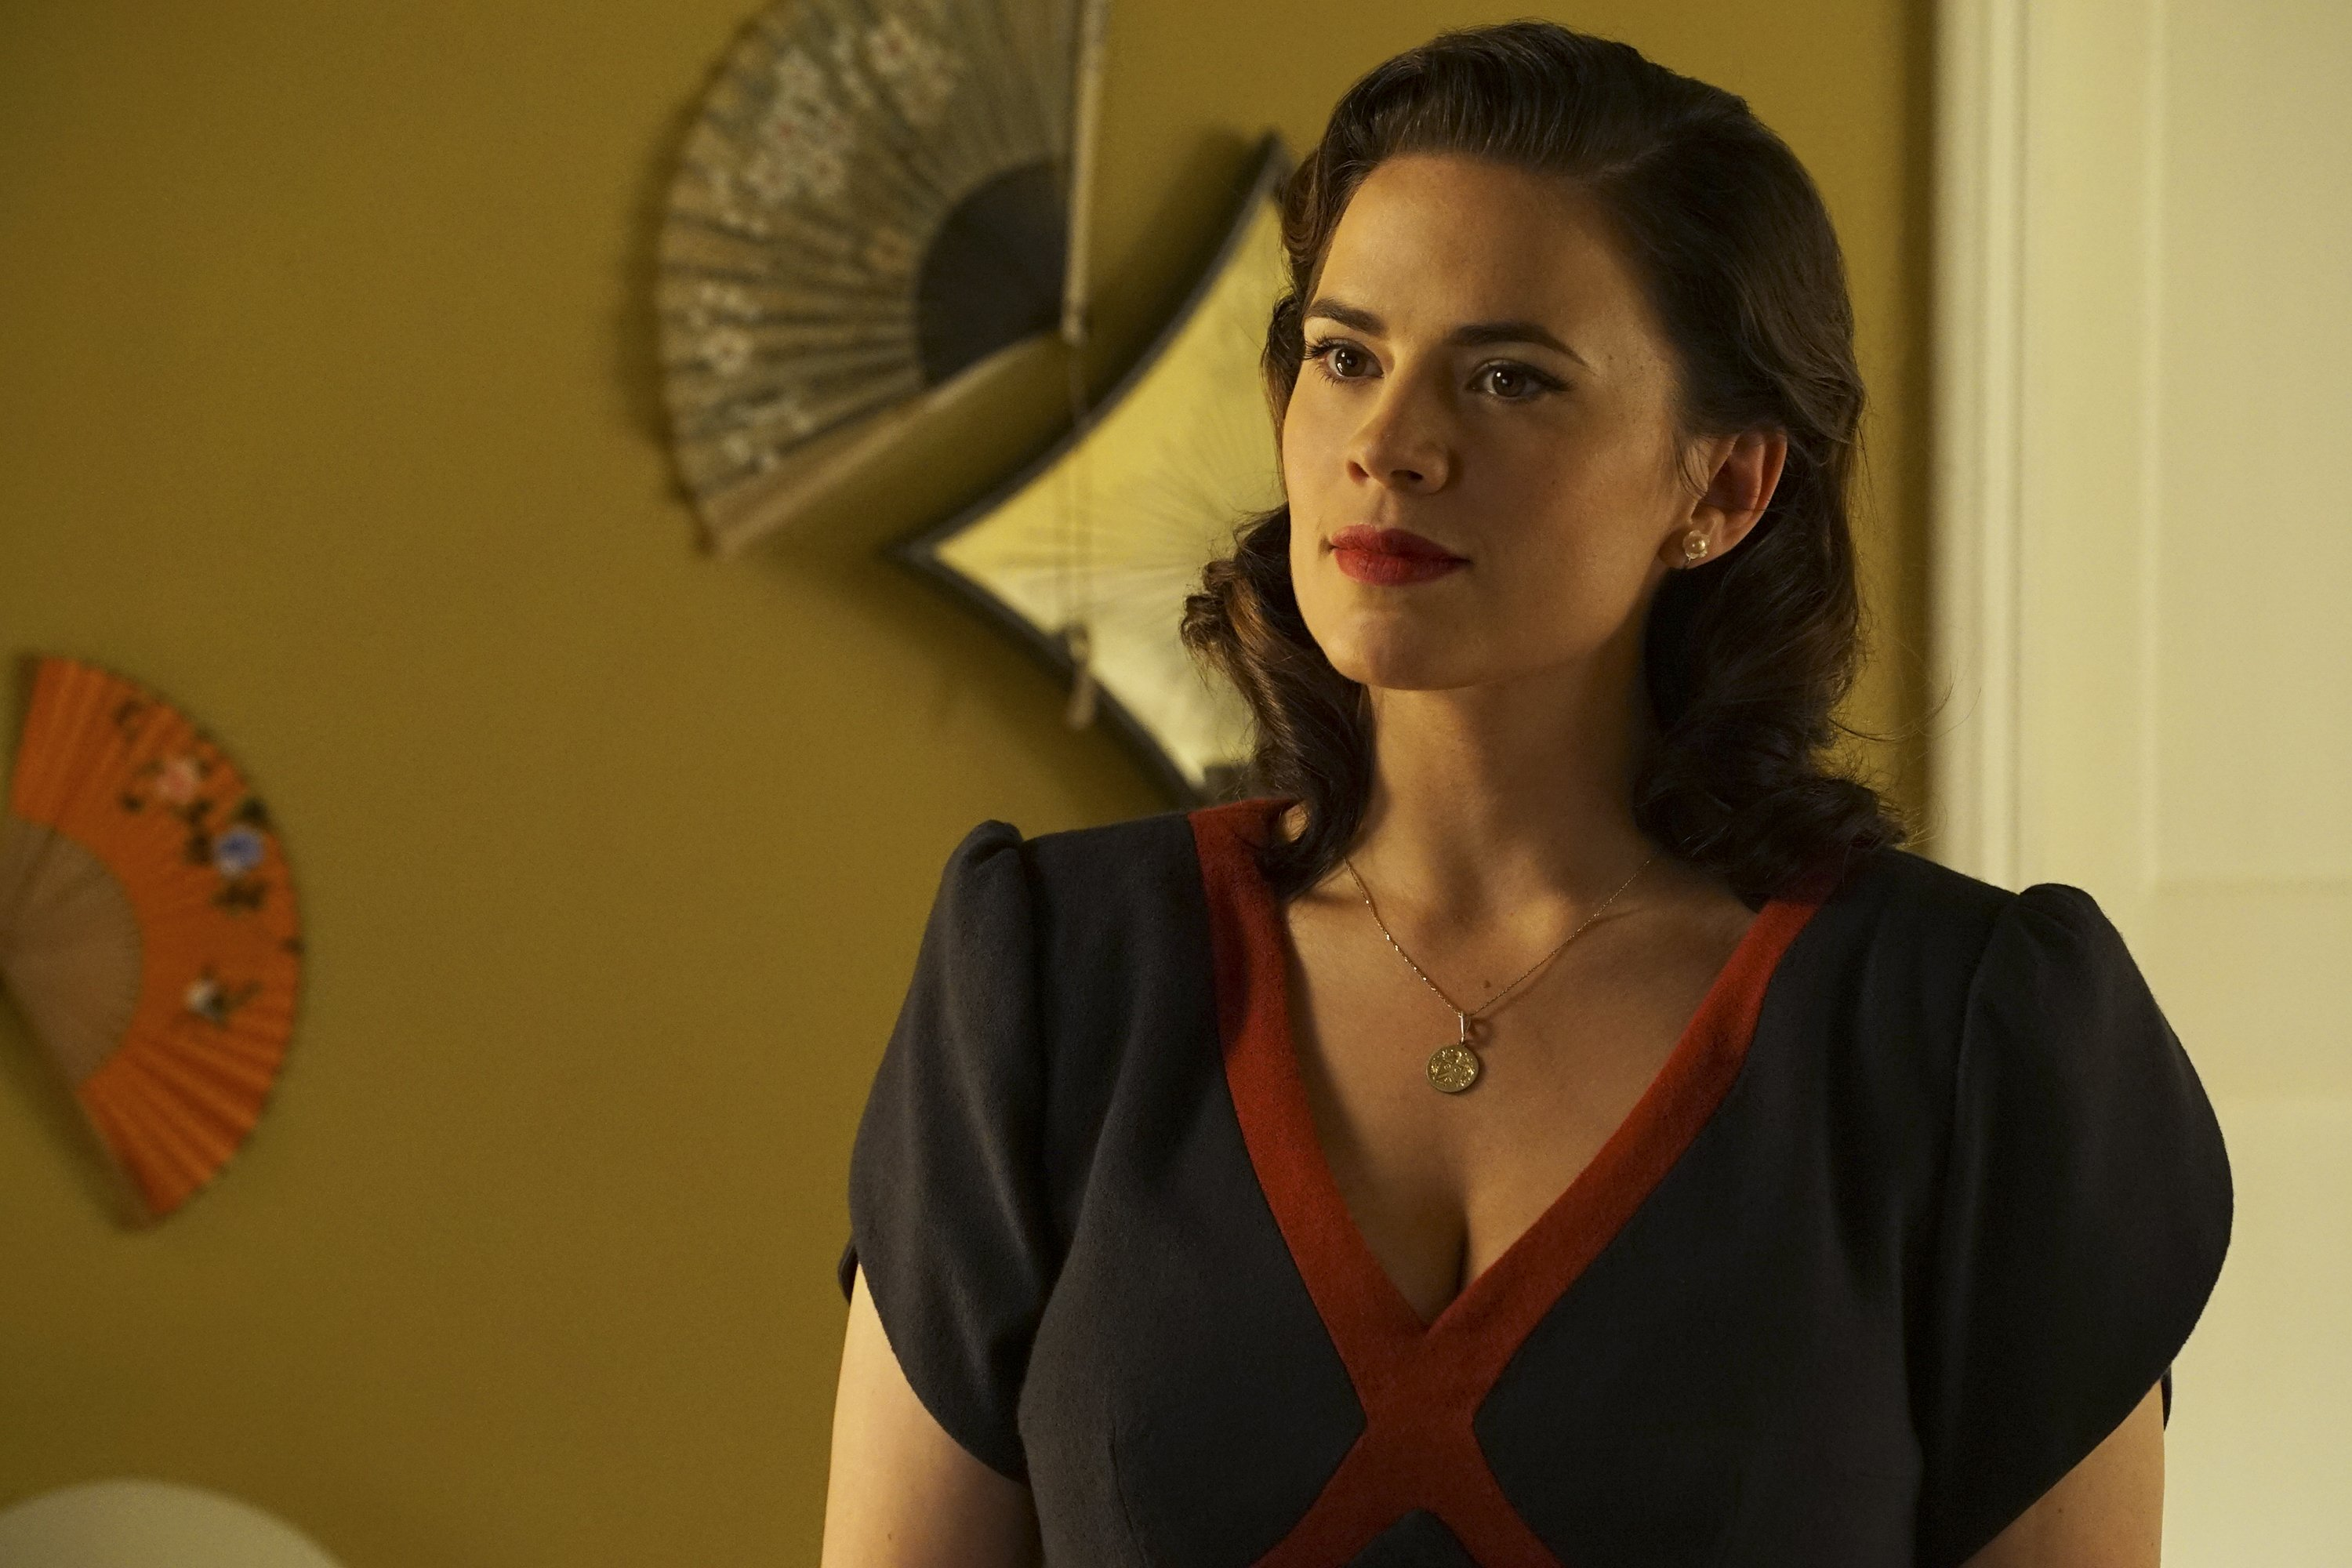 First Look Images From Agent Carter Season 2, Episode 3 Released